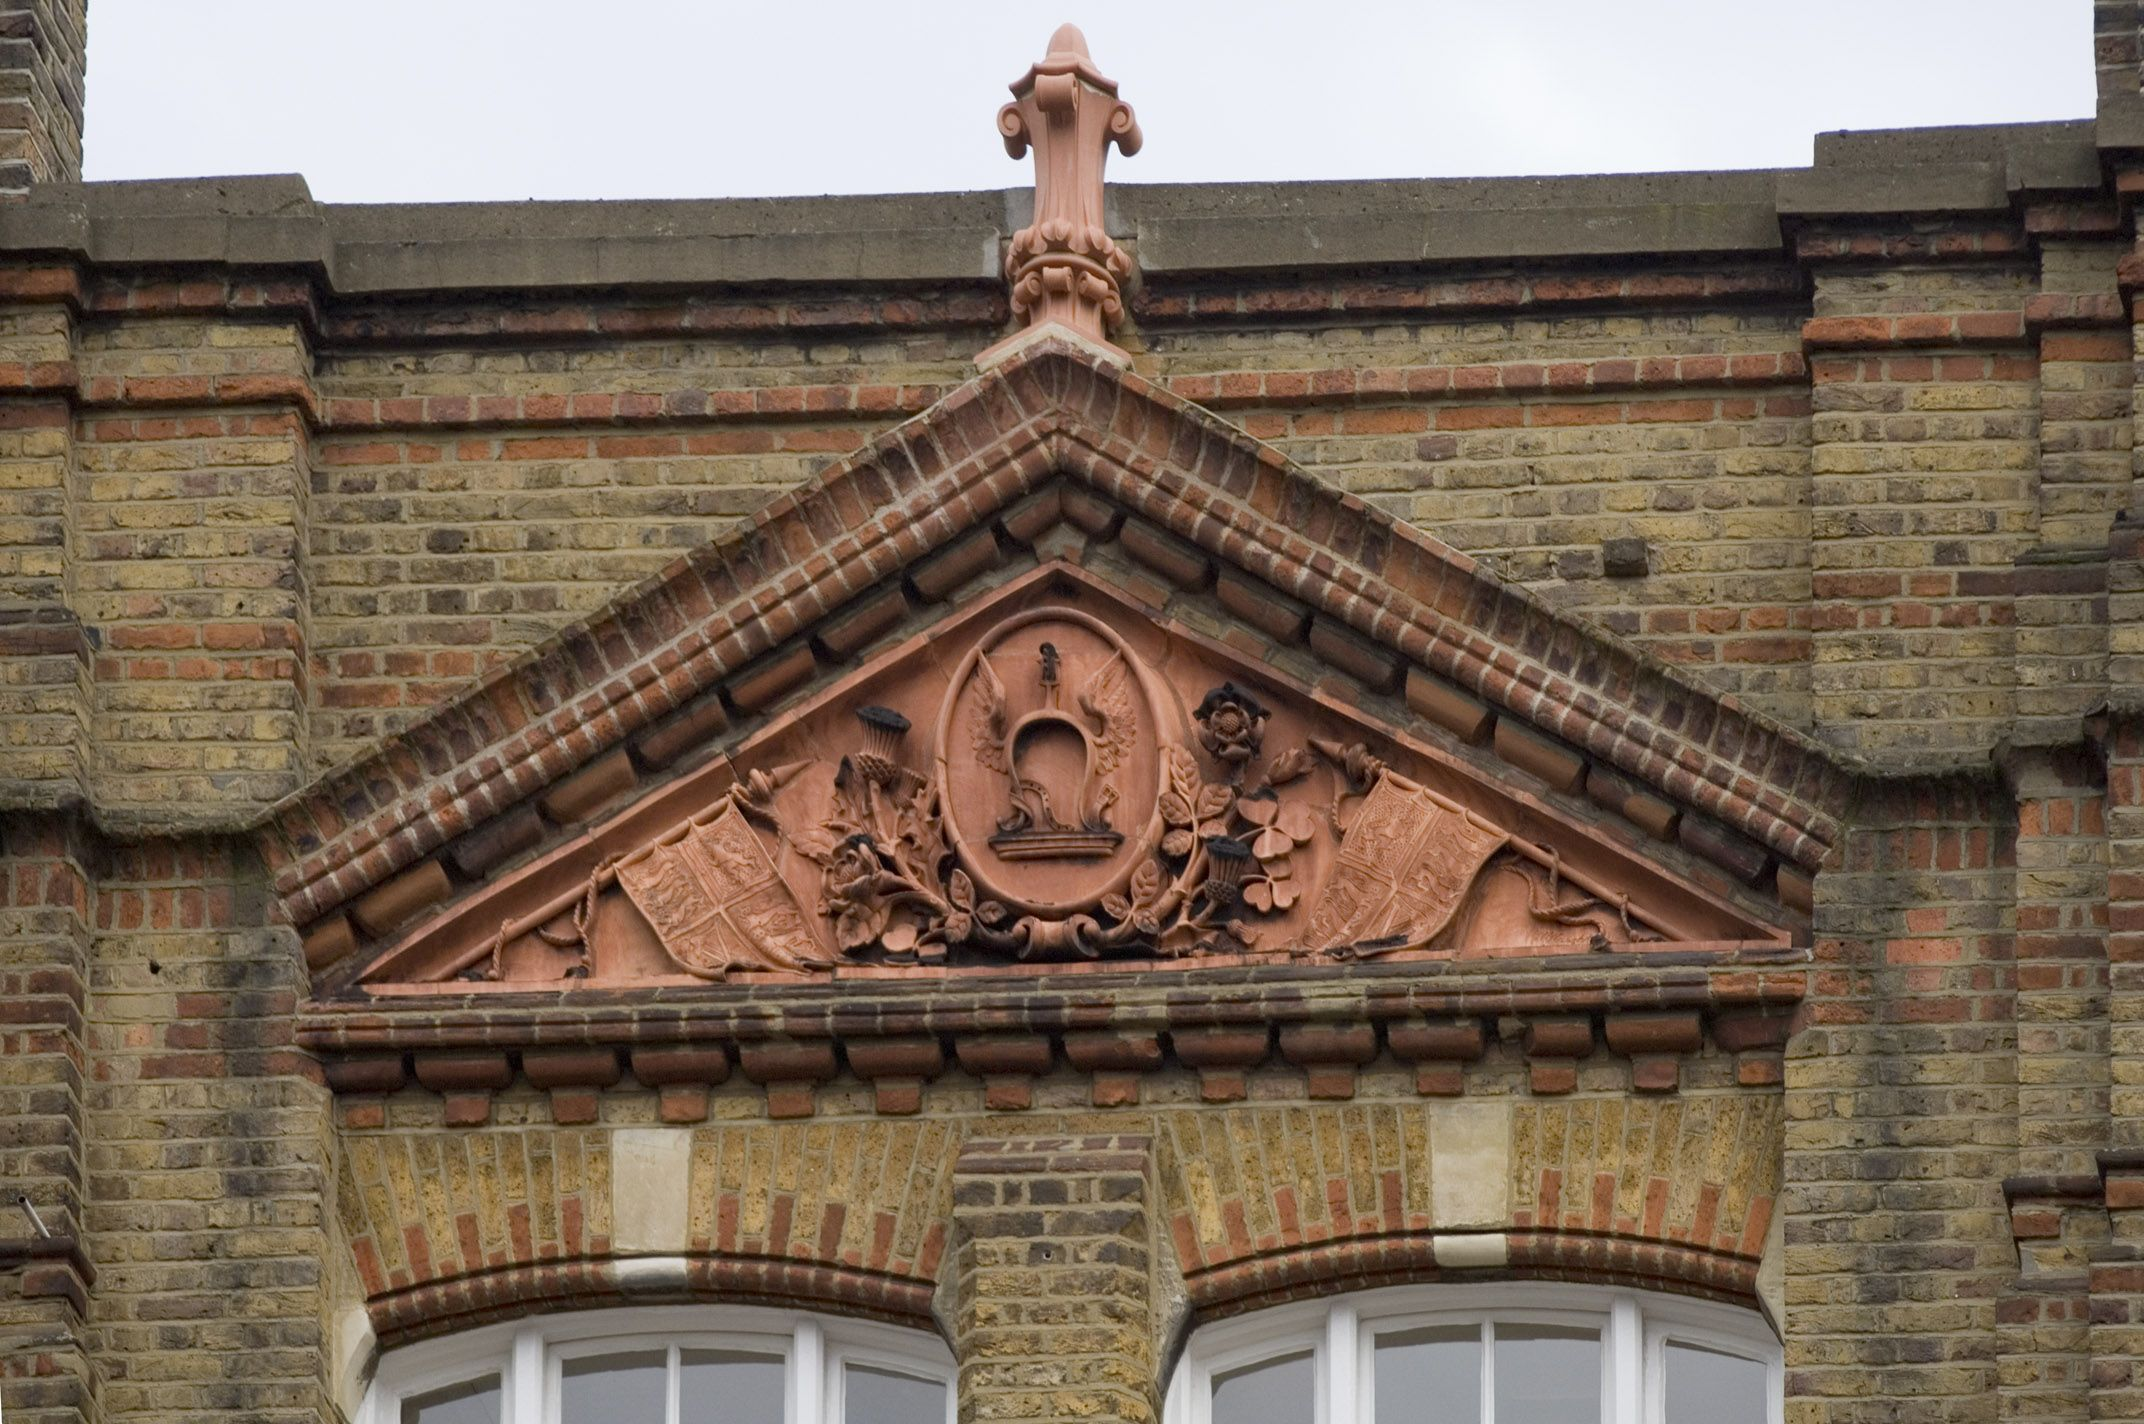 No. 16 Bowling Green Lane, detail of central pediment